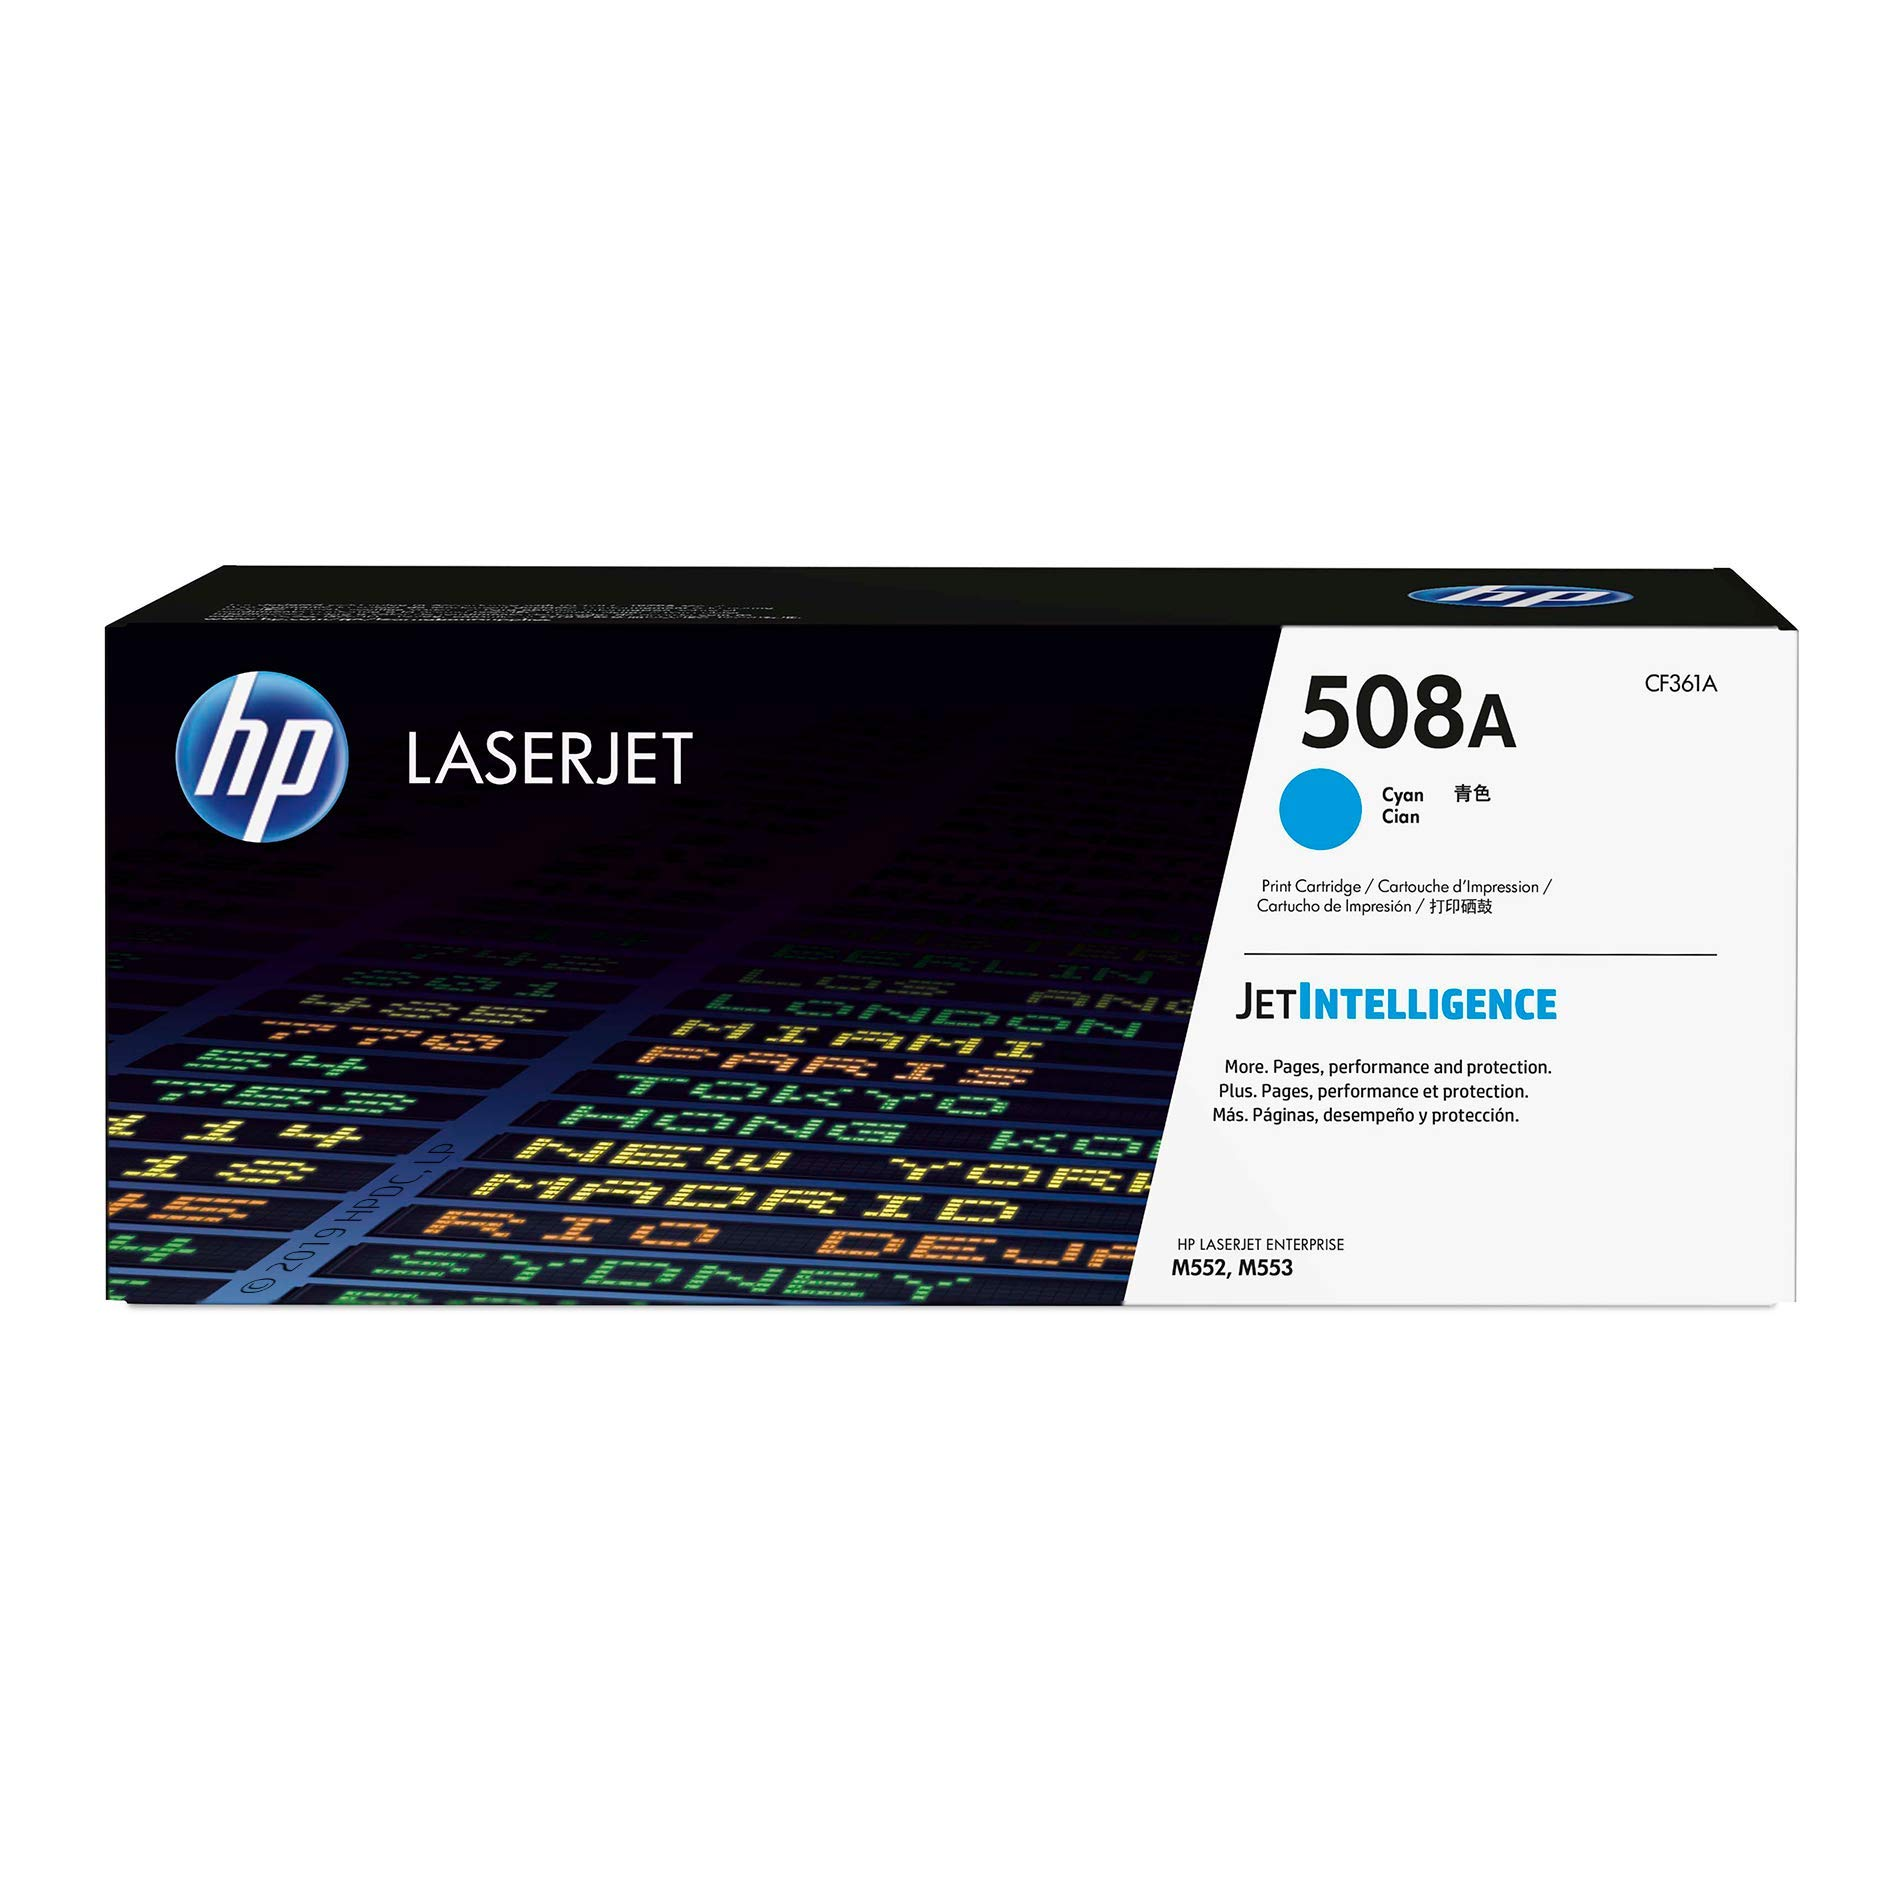 HP 508A (CF361A) Cyan Toner Cartridge for HP Color LaserJet Enterprise M577 M553